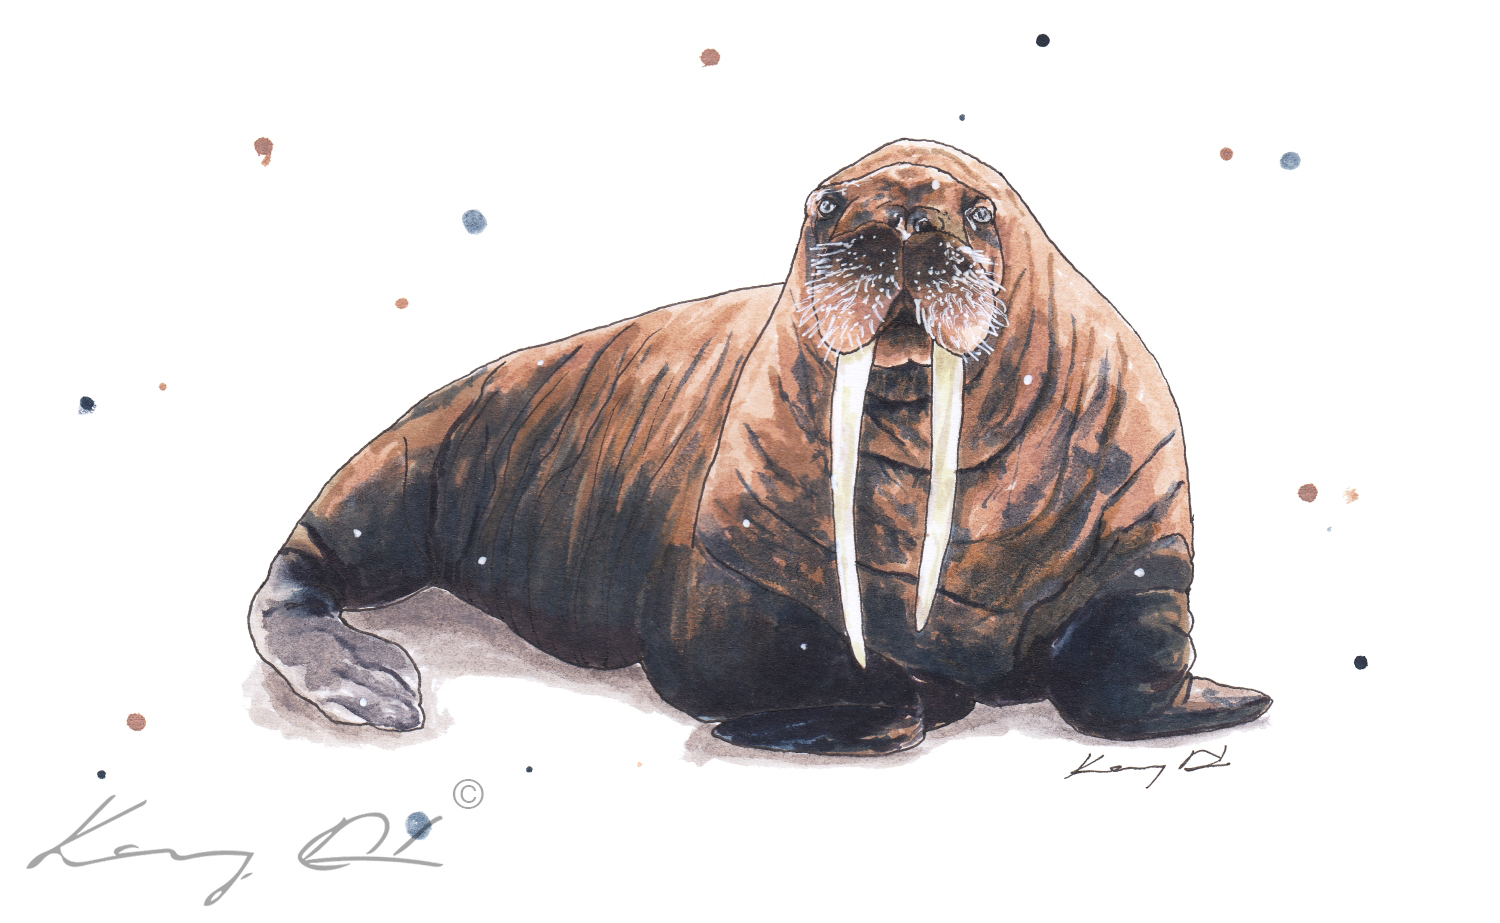 BP_18_037_Fat_Walrus_website.jpg